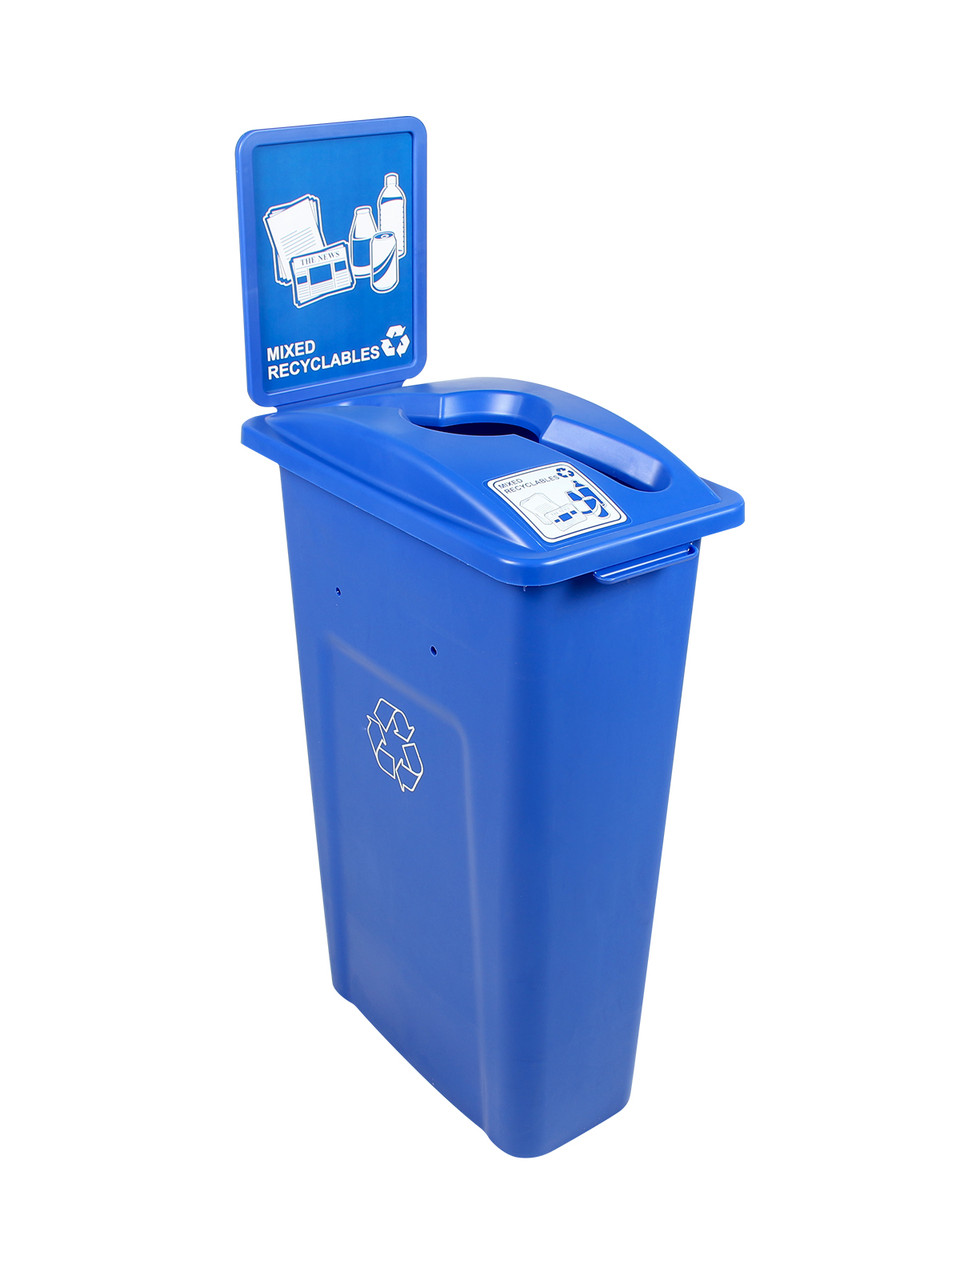 23 Gallon Blue Skinny Simple Sort Recycle Bin with Sign (Mixed Recyclables)